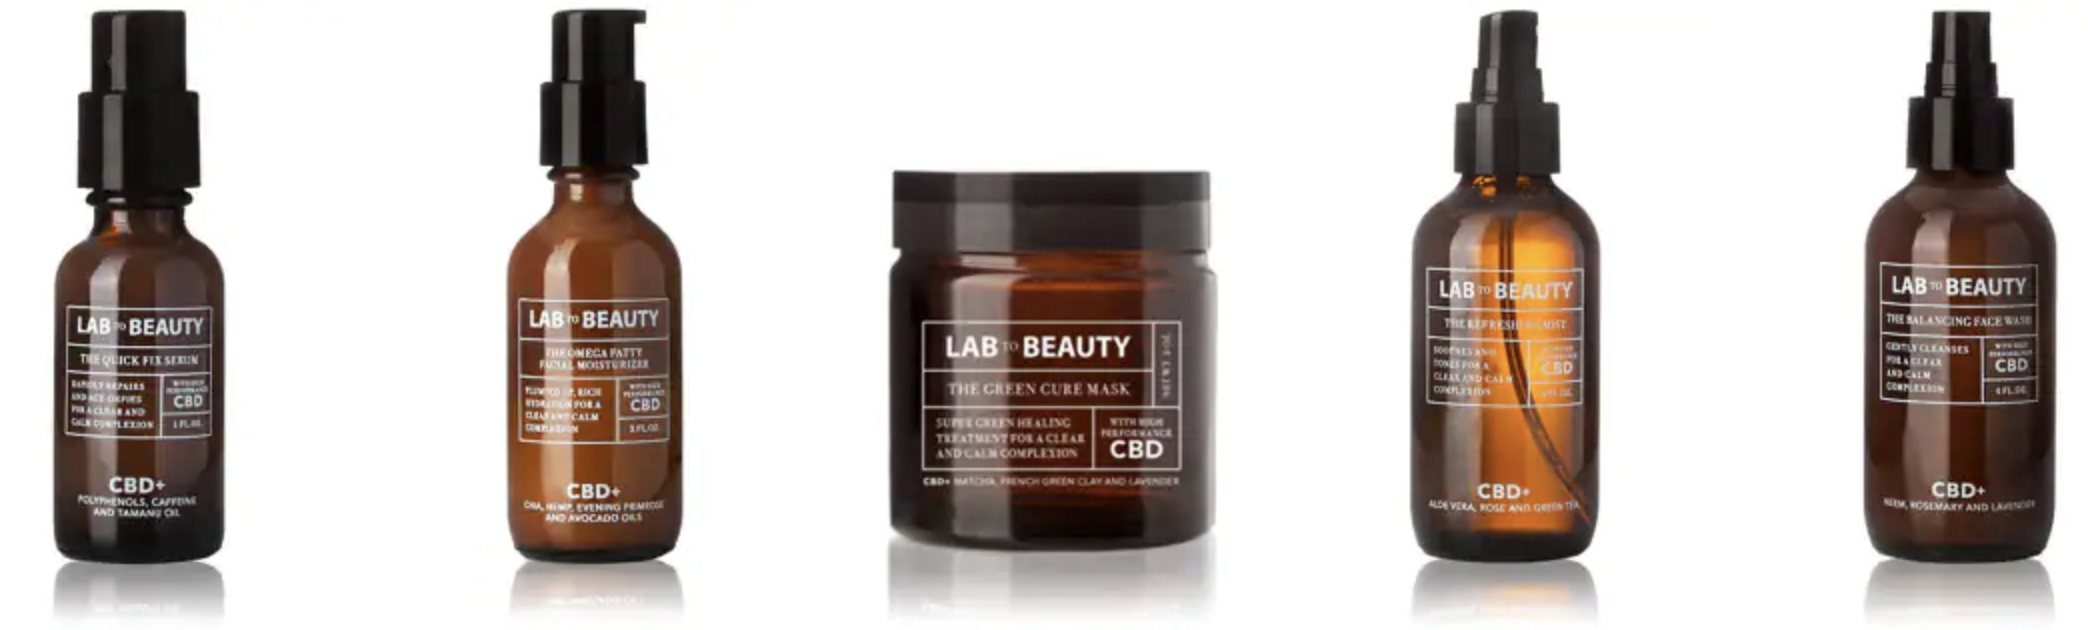 https://www.barneys.com/product/lab-to-beauty-the-cbd-drops-506111933.html